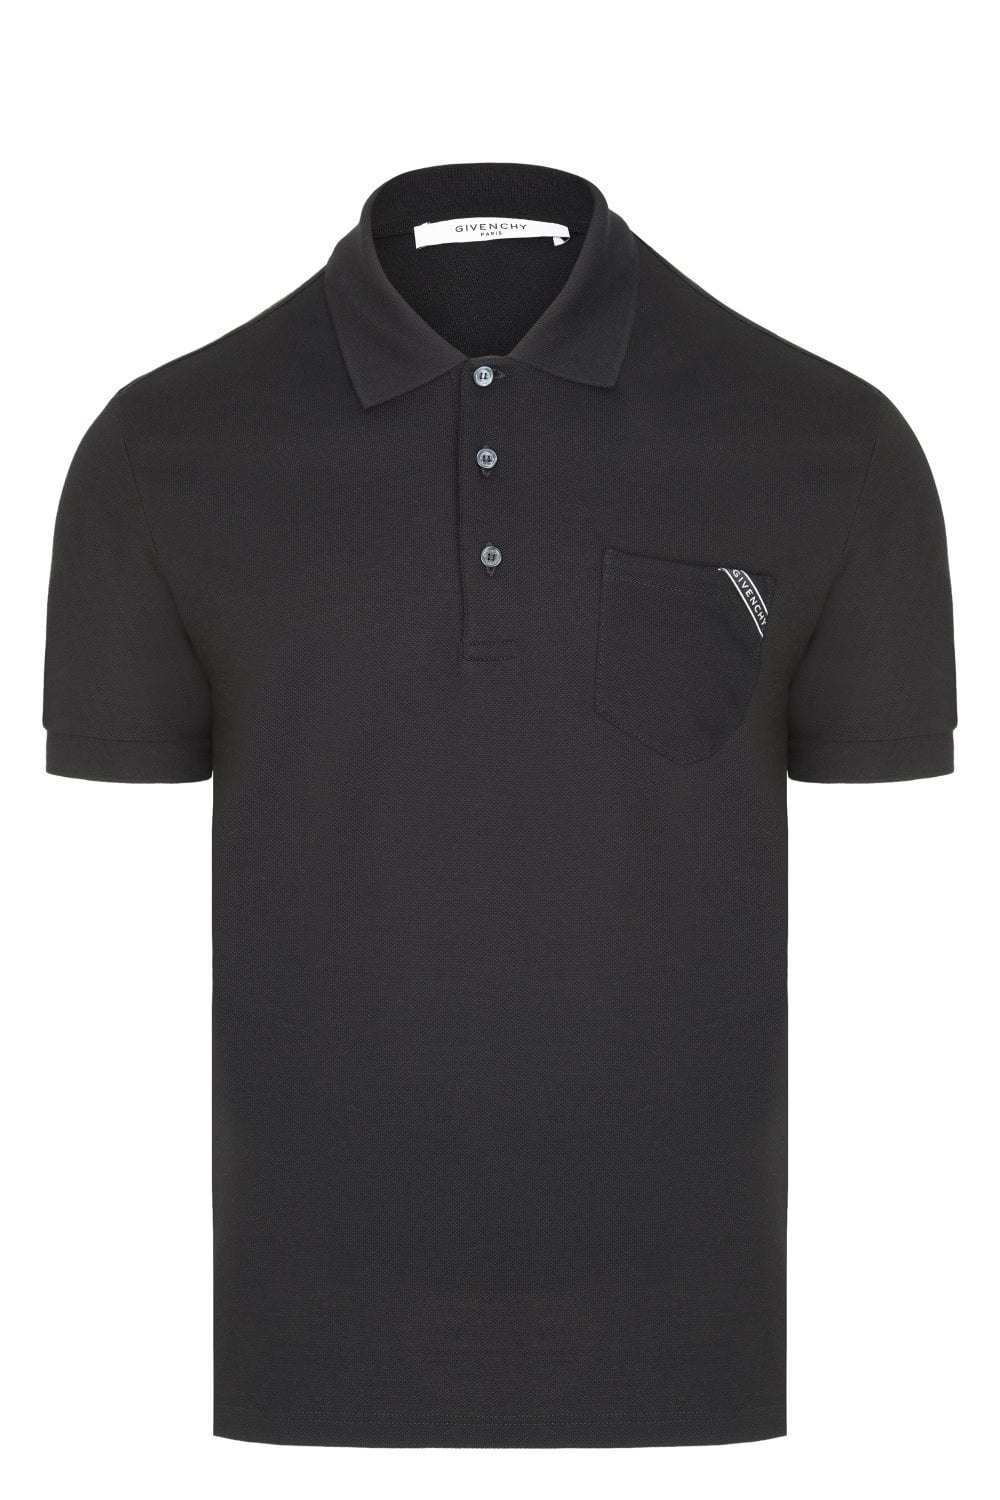 the latest bd39d ca270 GIVENCHY Givenchy Tape Logo Polo Shirt